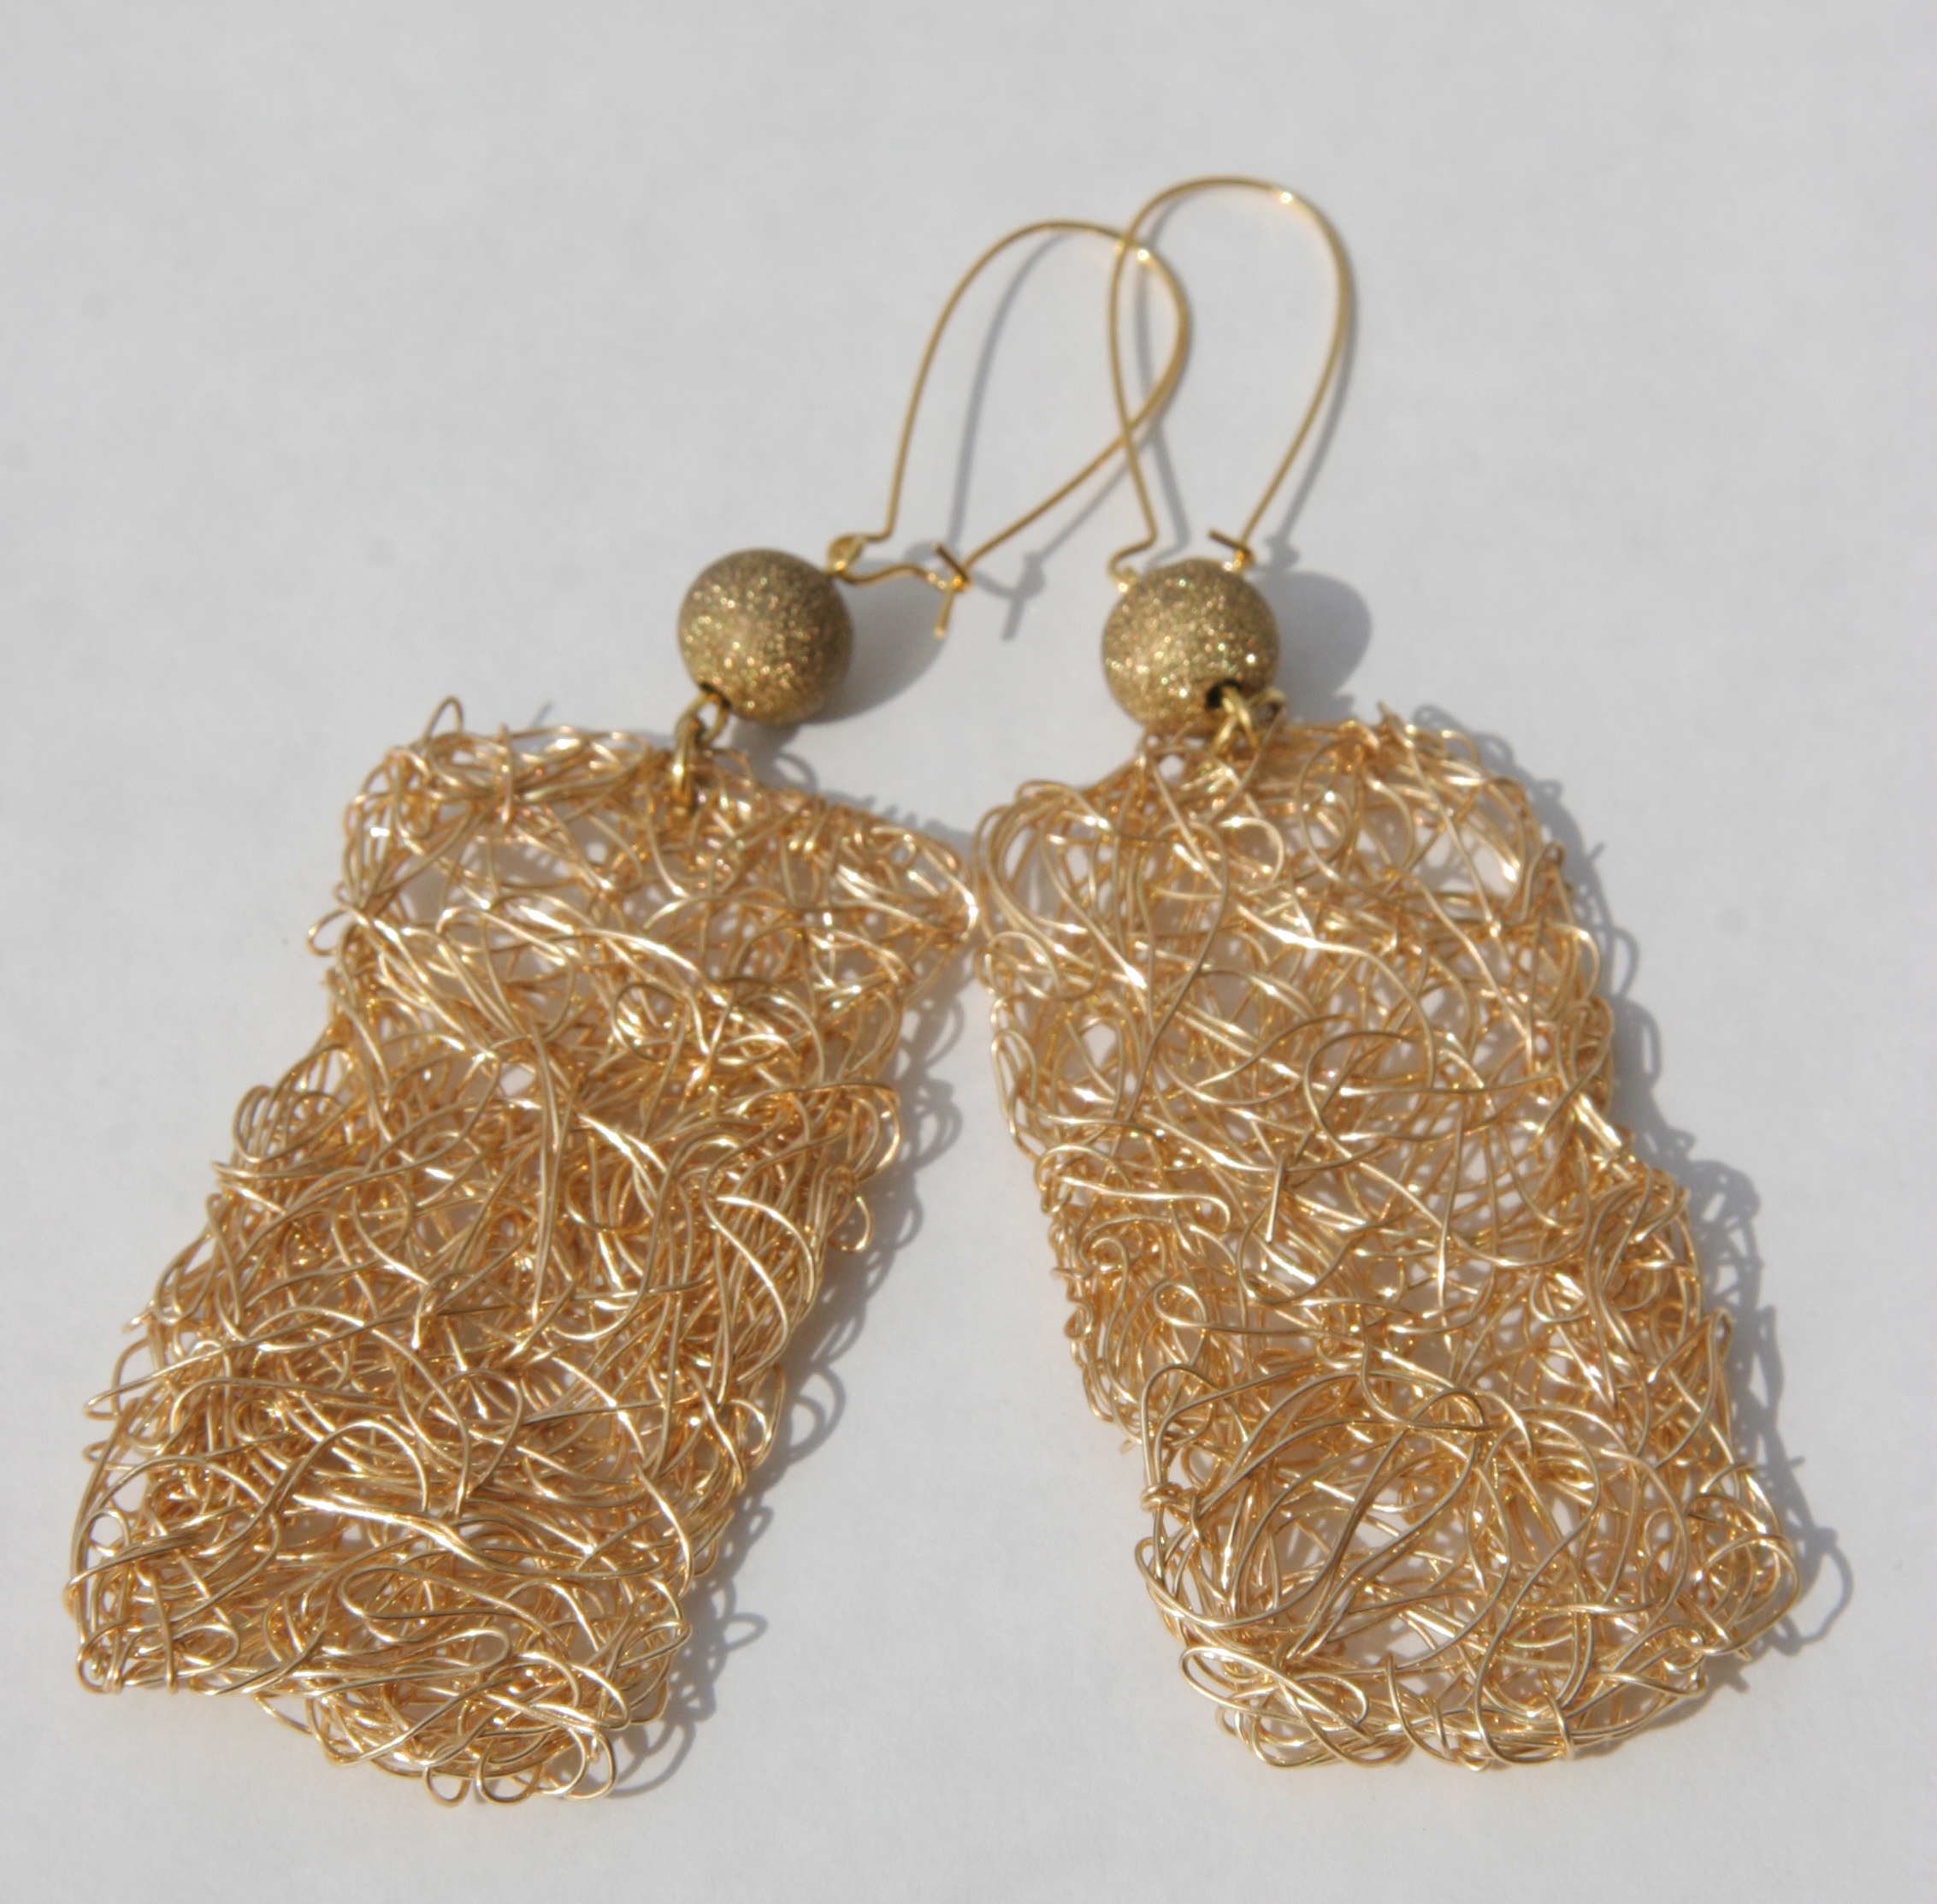 4) IMG_9586 - WIRE EARRINGS FULL.jpg